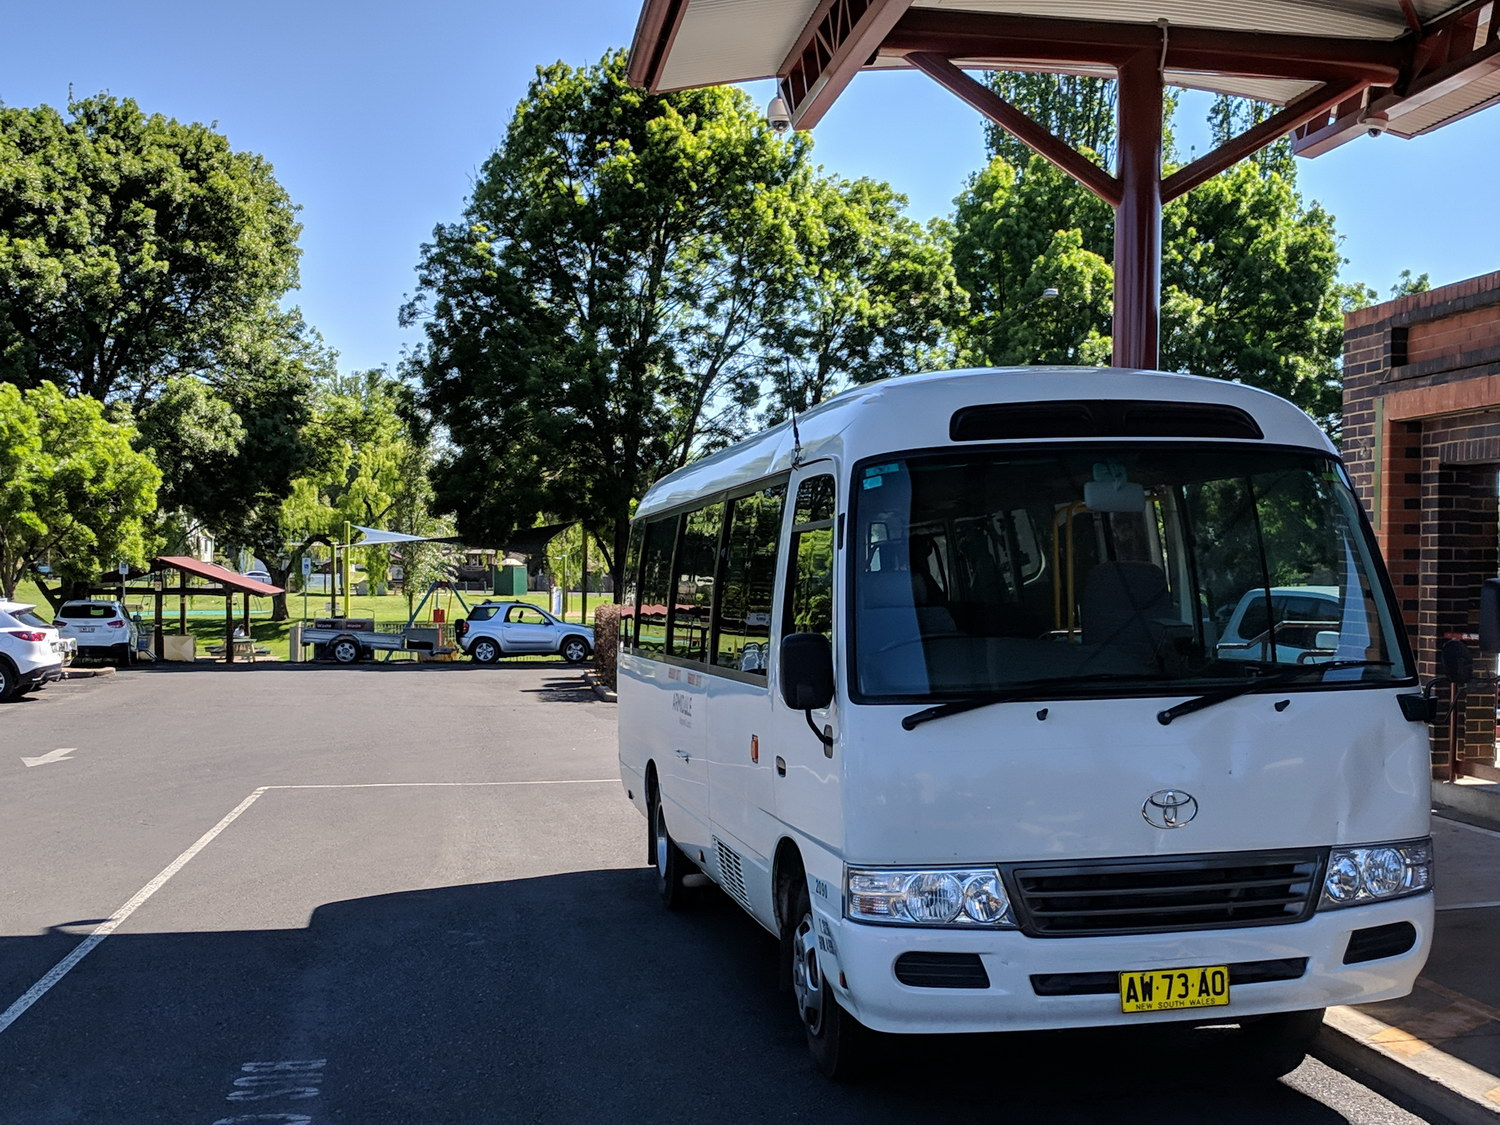 bus-creeklands-tour-sep-2018.jpg